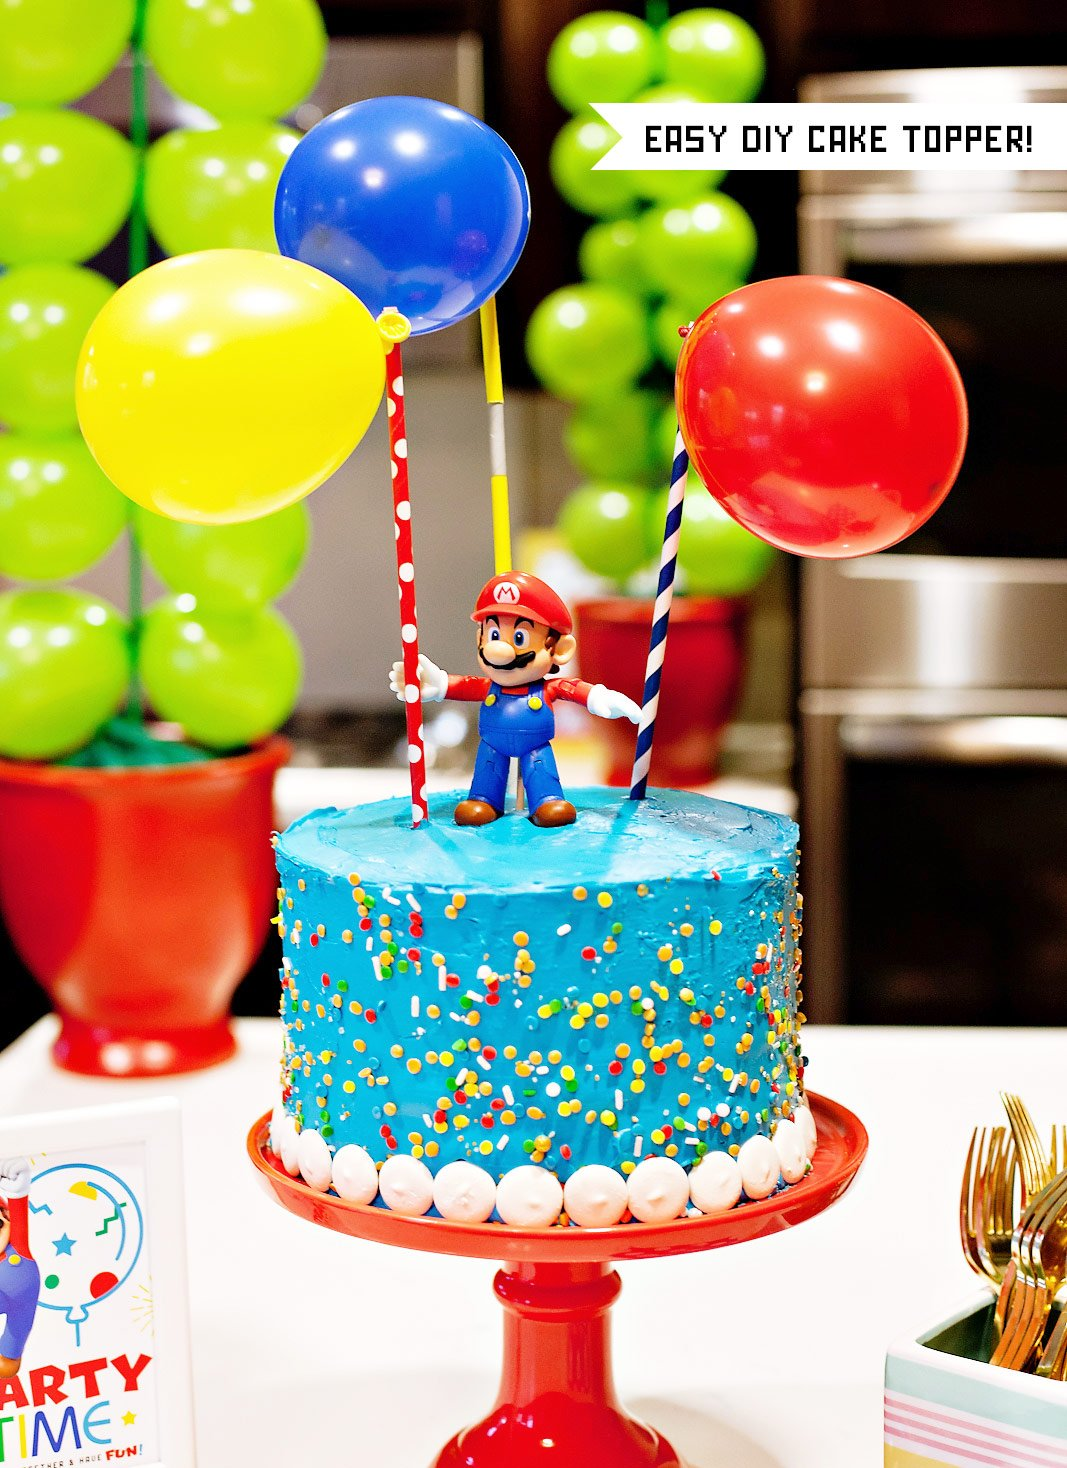 Super Mario Inspired Party Fun 12 Creative Ideas Part 2 Hostess With The Mostess